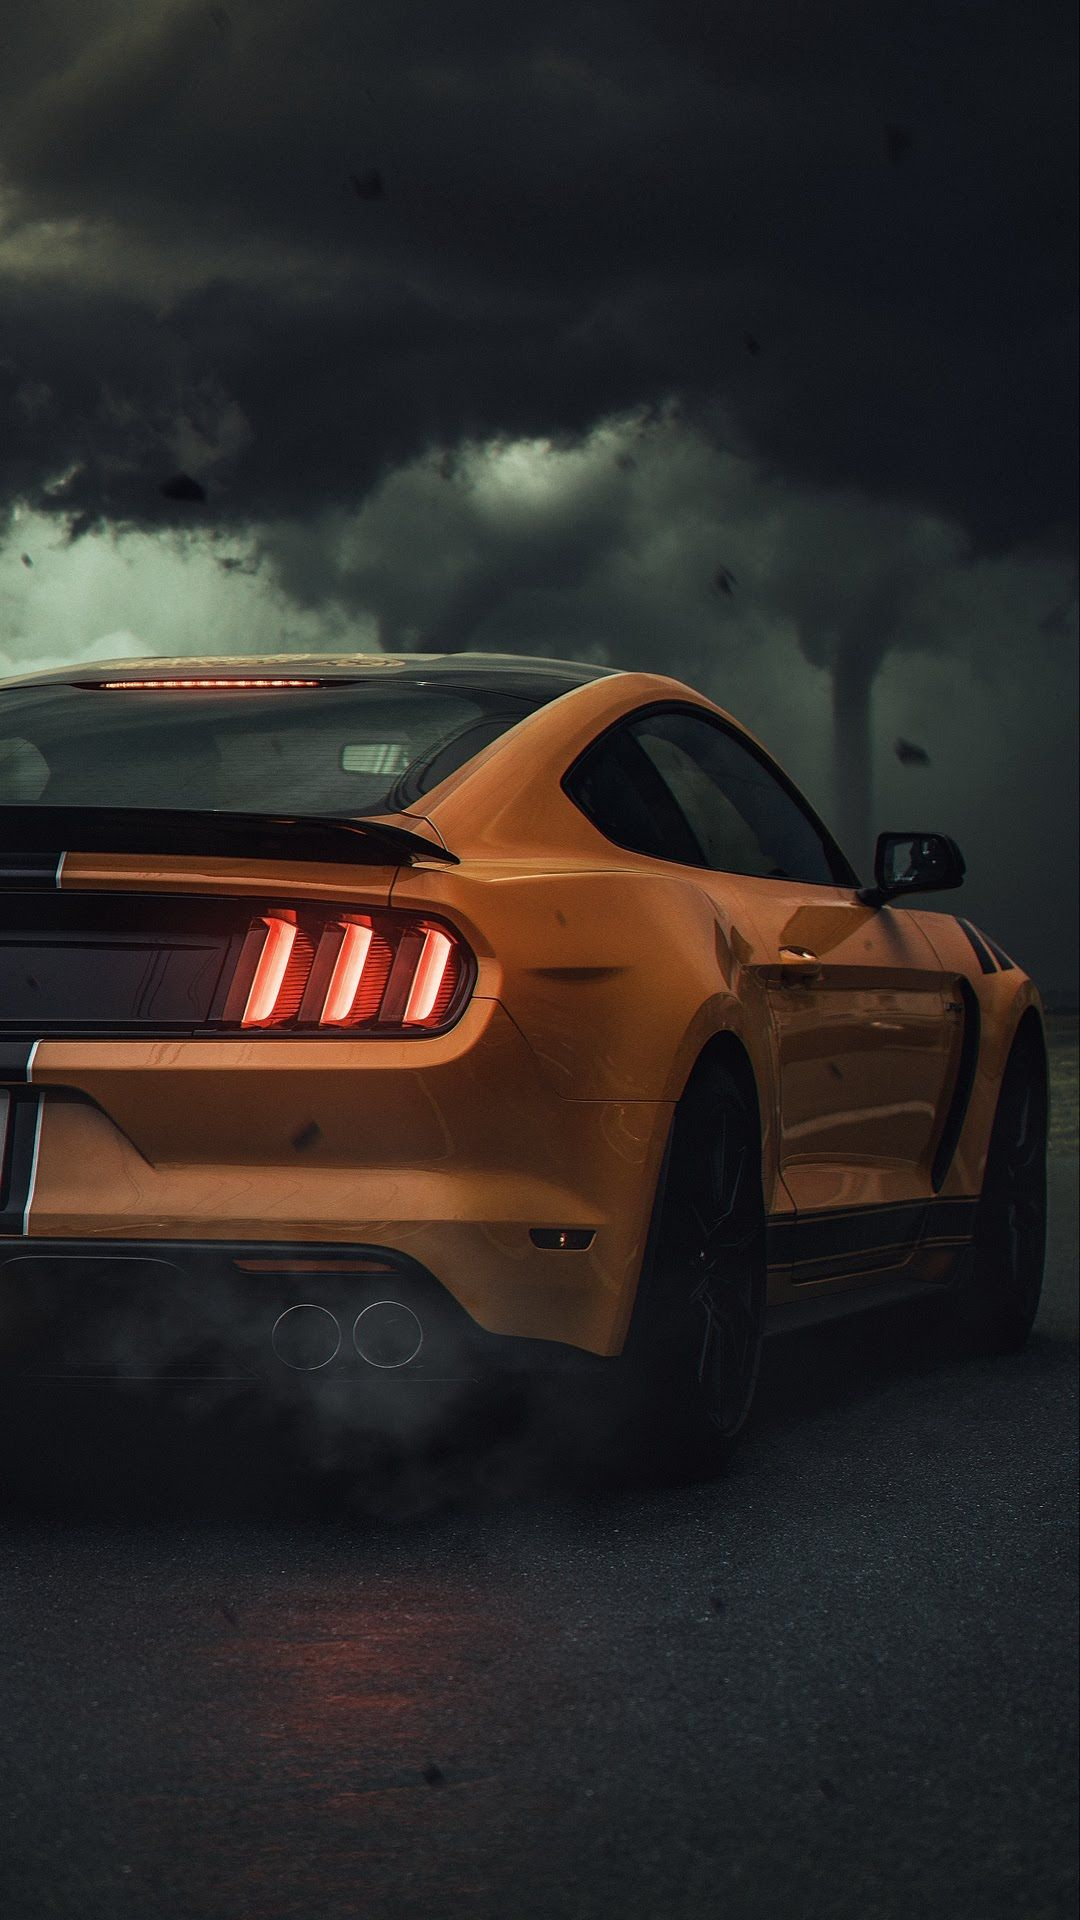 Ford Mustang Hd Wallpapers Download Mustang Wallpaper Ford Mustang Wallpaper Ford Mustang Car